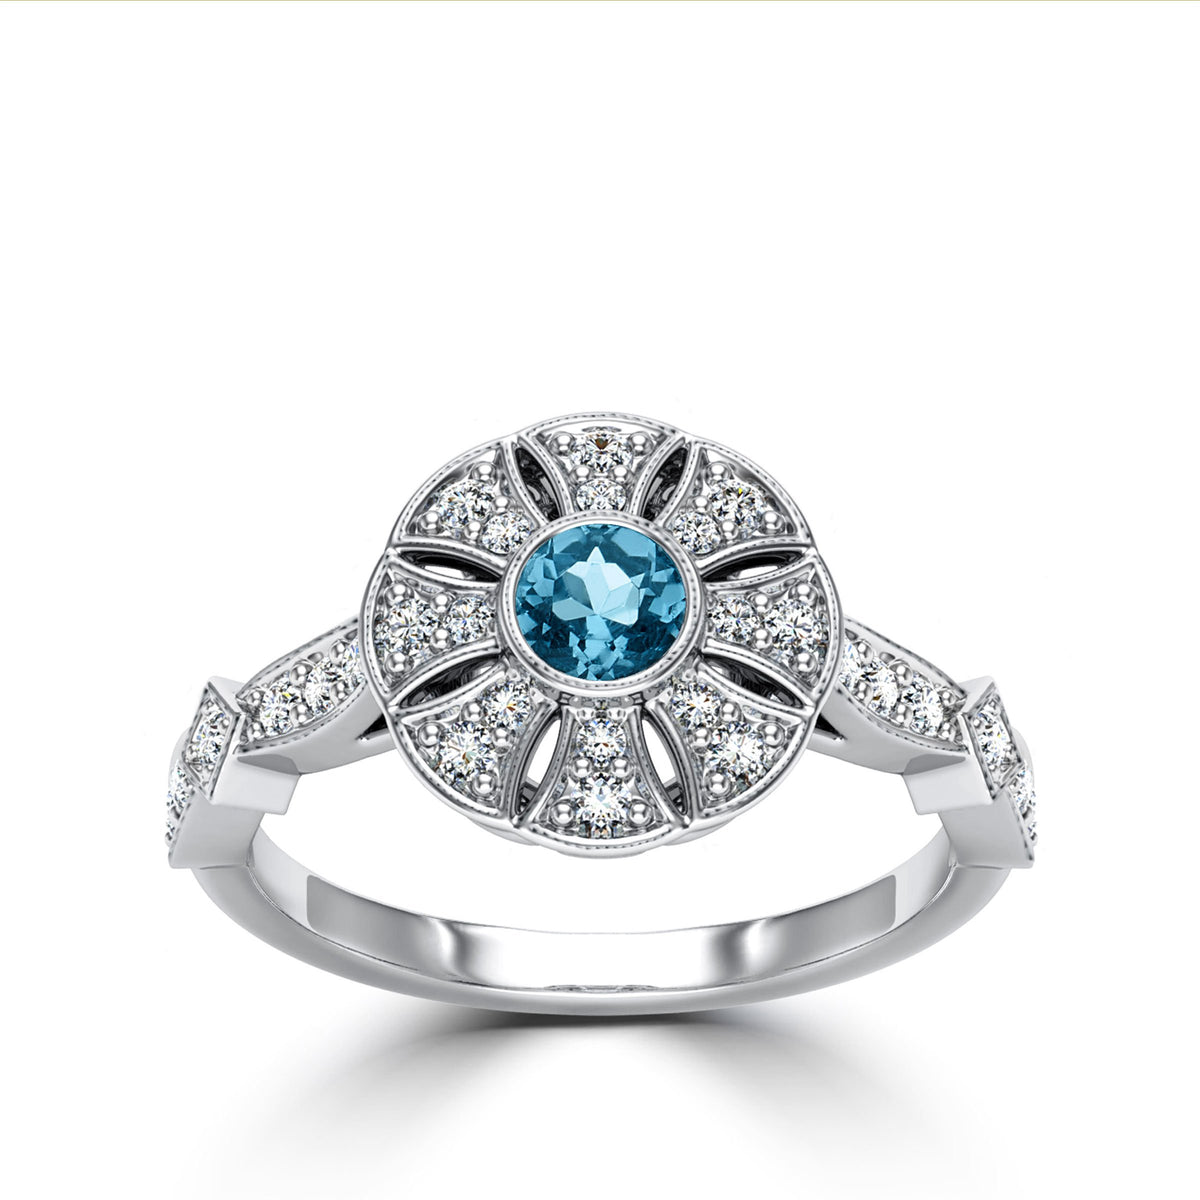 Aquamarine & Diamond Flower Milgrain Ring in 14K White Gold